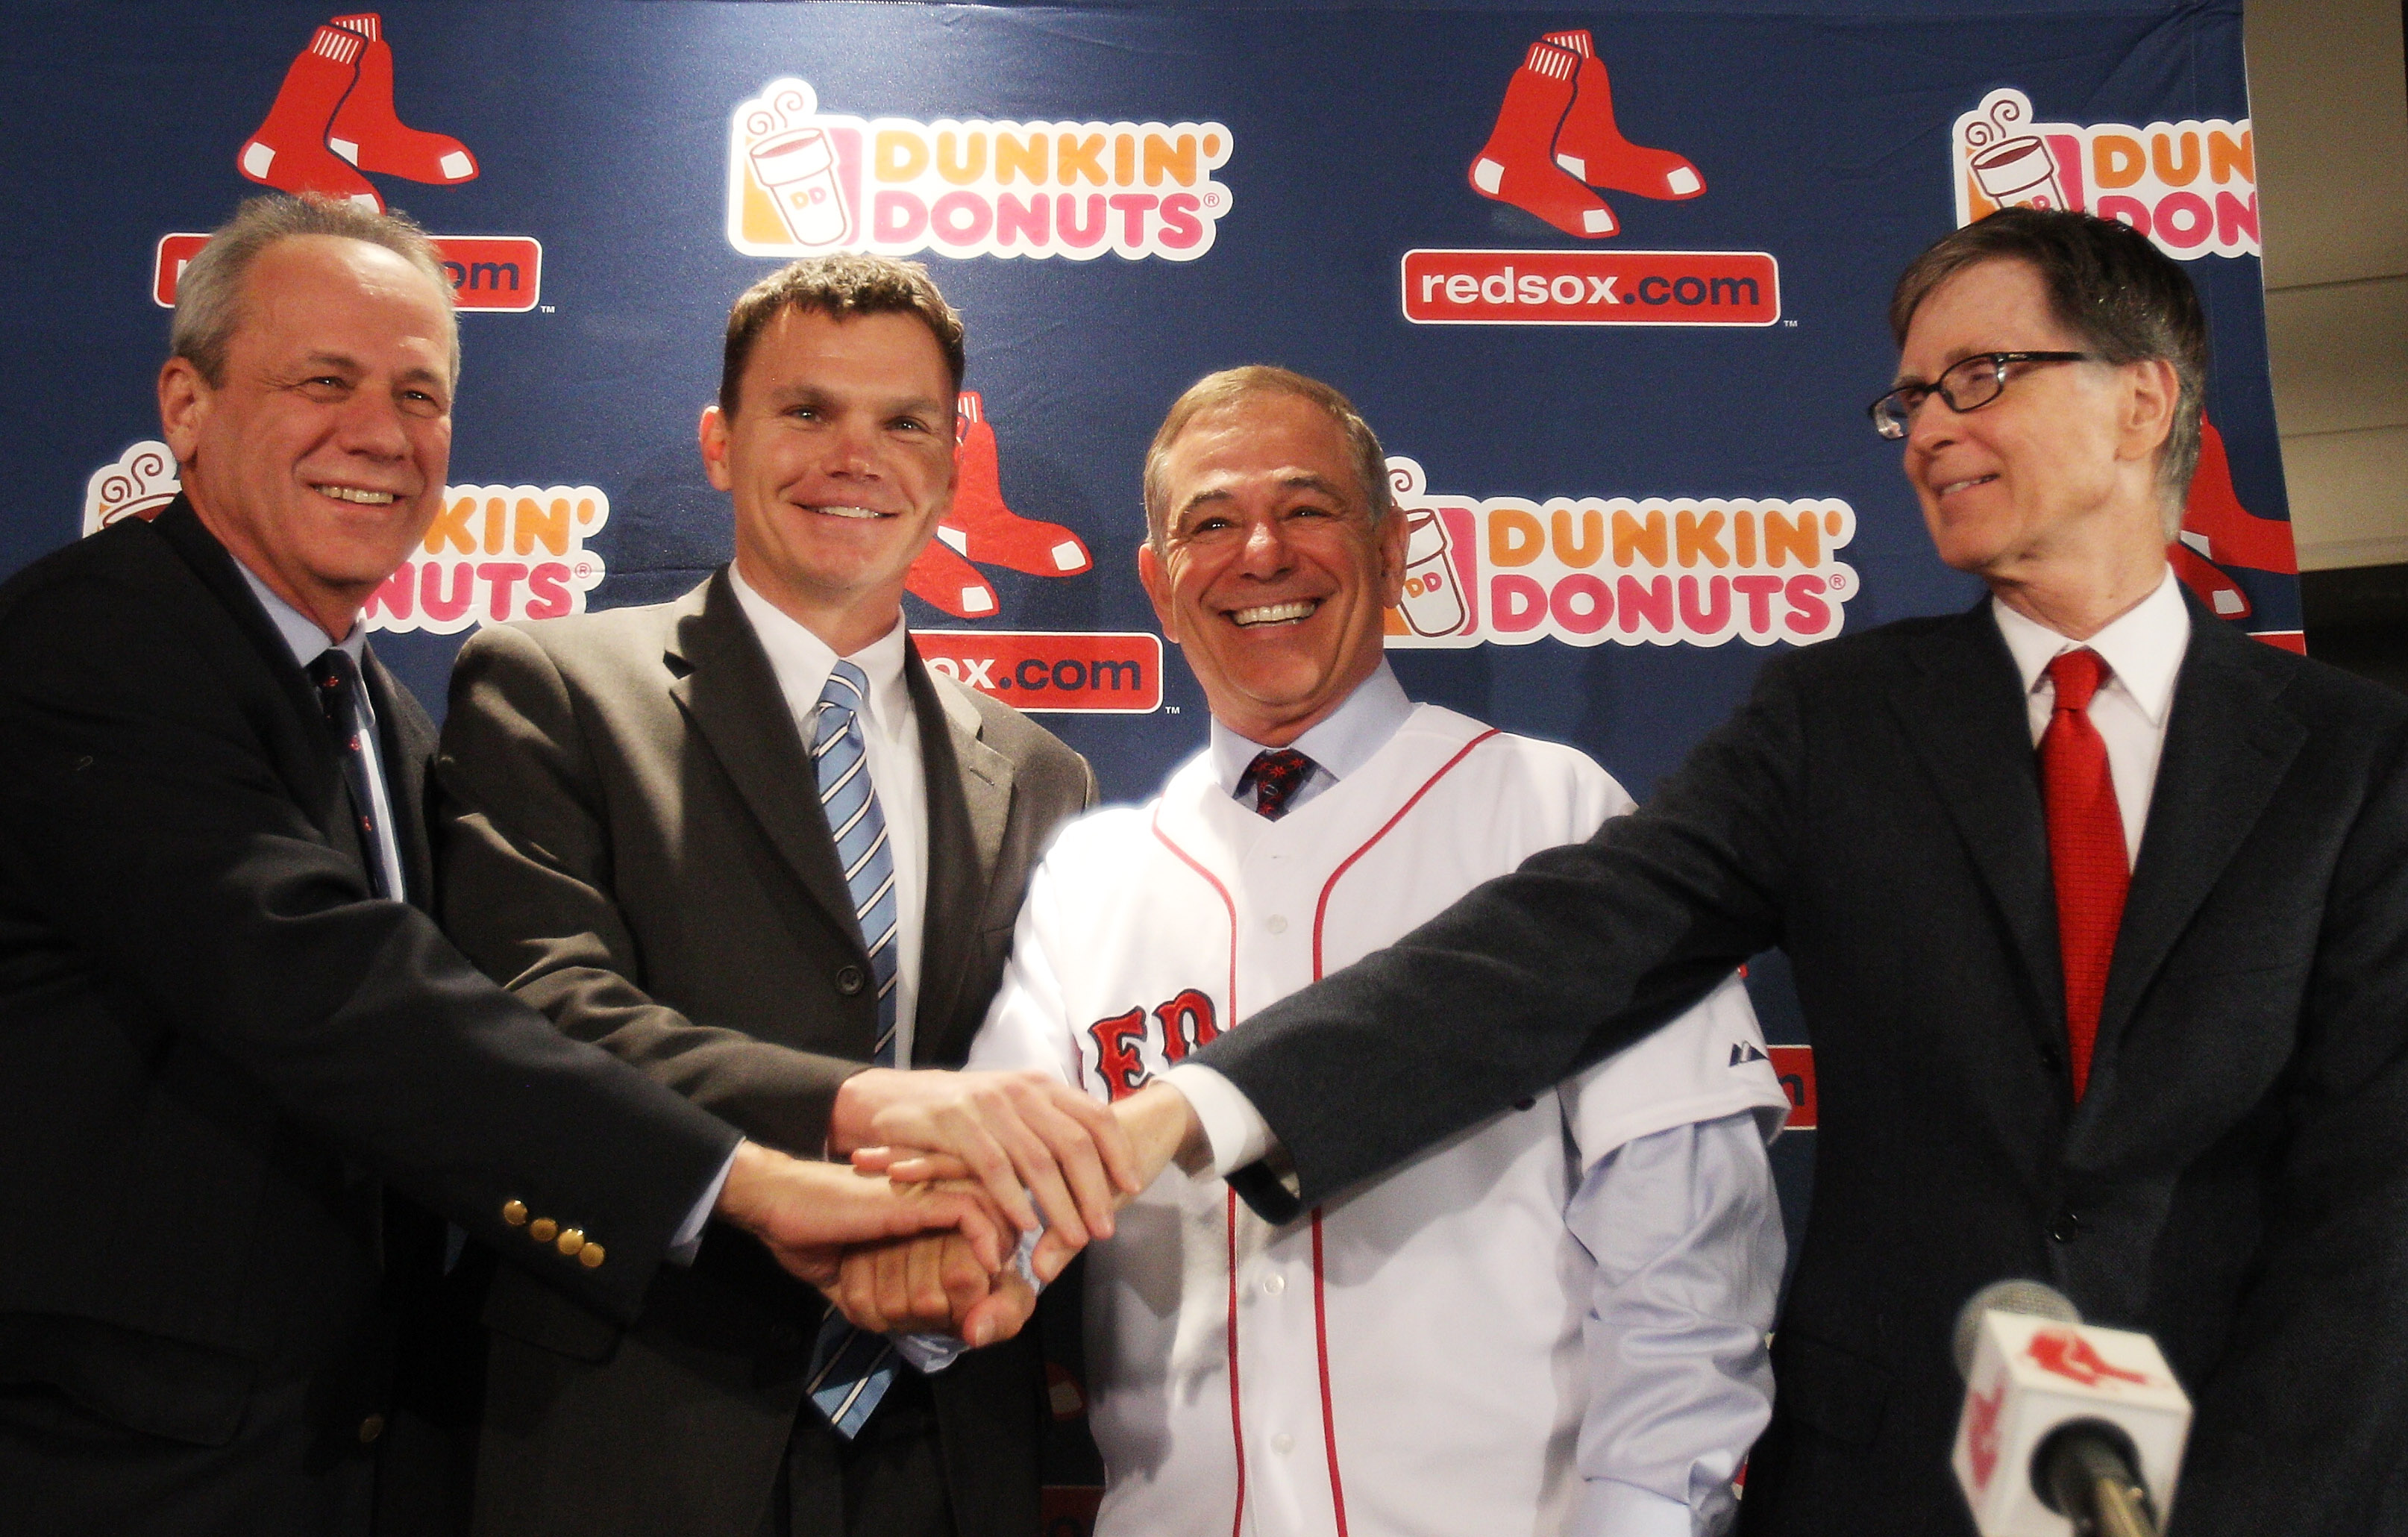 Red Sox president Larry Lucchino, left, has backed his hand-picked manager, Bobby Valentine. (Getty Images)